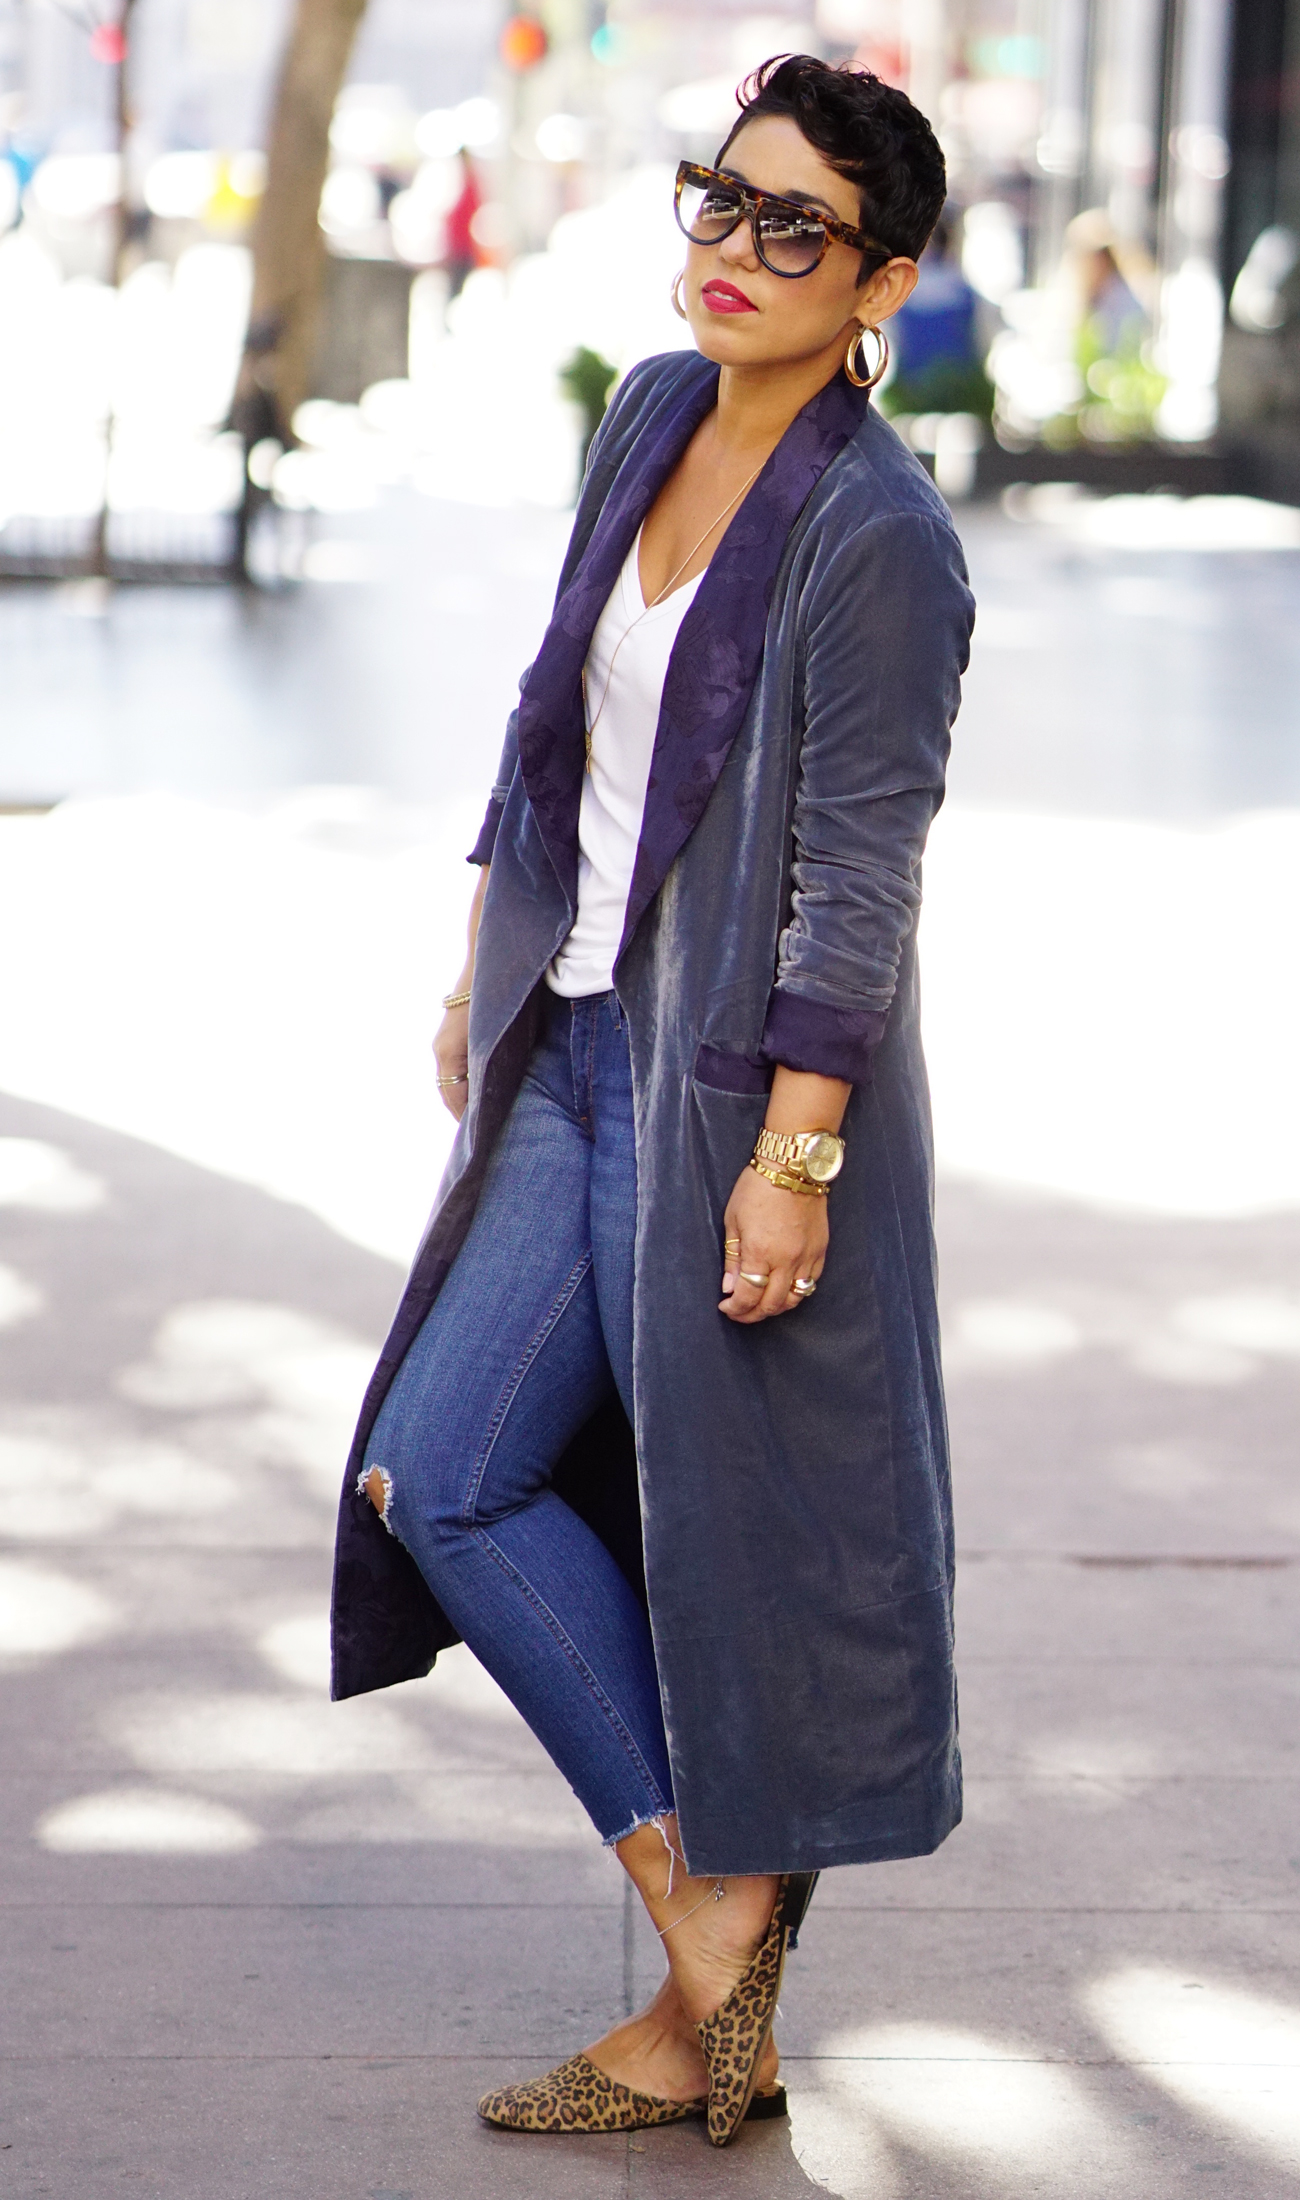 My Velvet Jacket And Jeans Mimi G Style